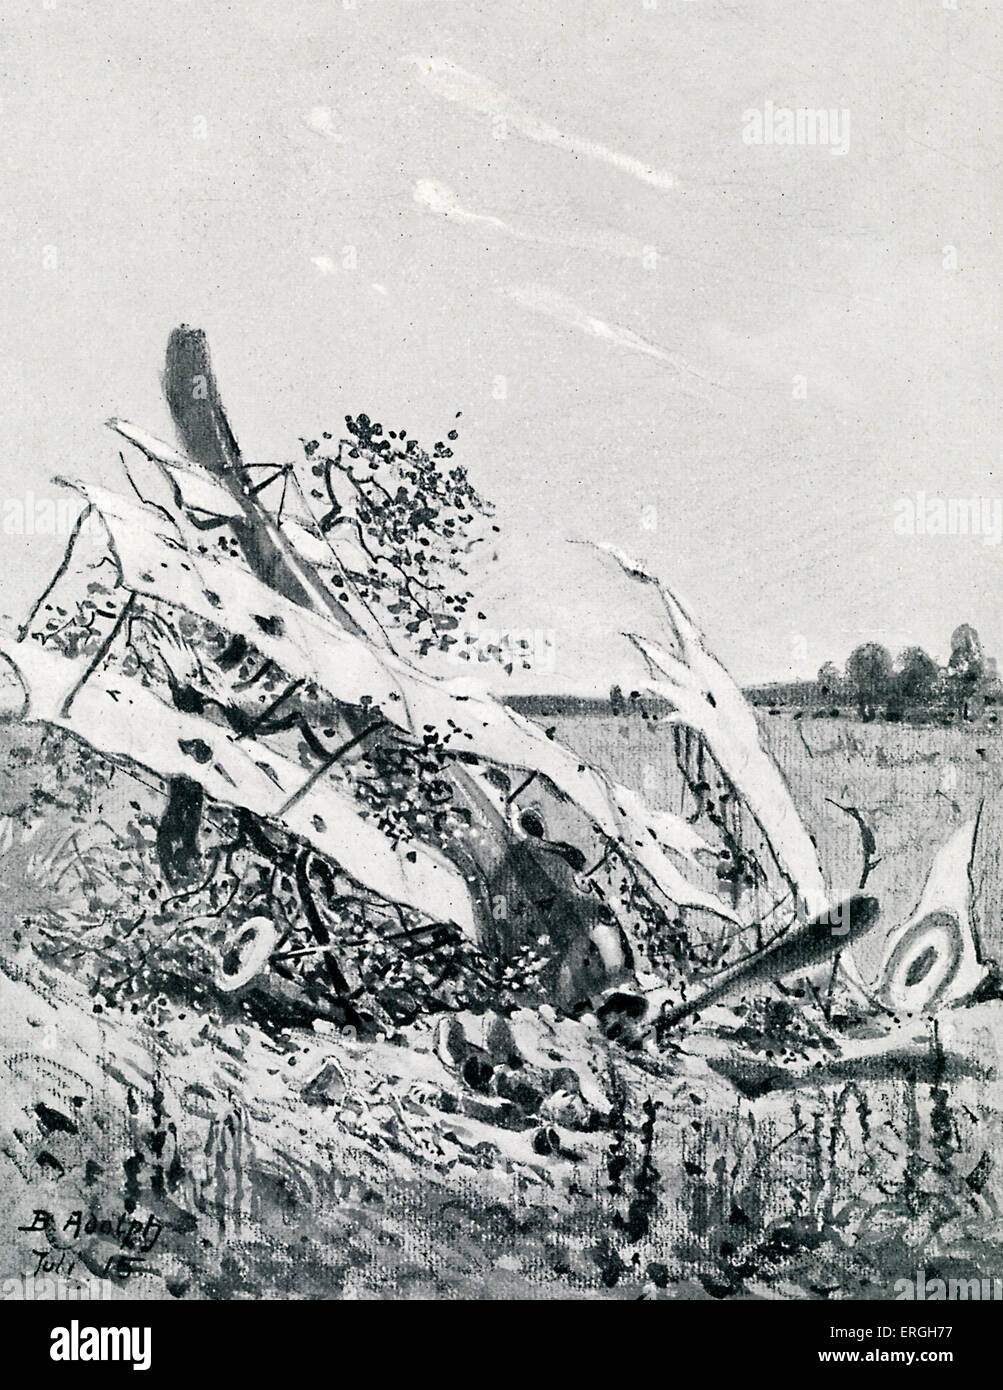 World War 1: Shot - down British plane. After drawing by Berthold Adolph published 4 November 1915. - Stock Image